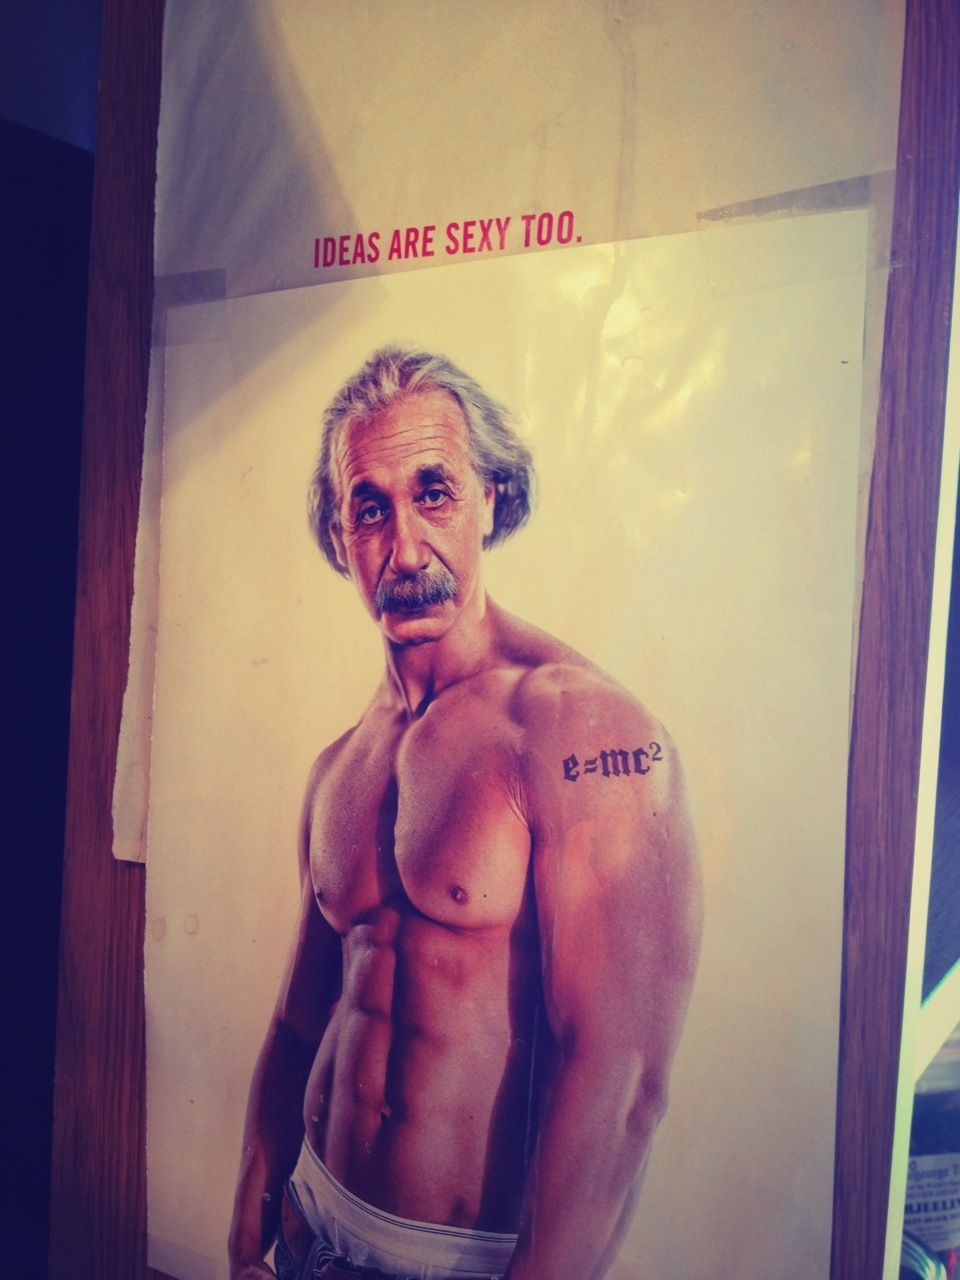 Einstein, if #Fitocracy had existed during his time.